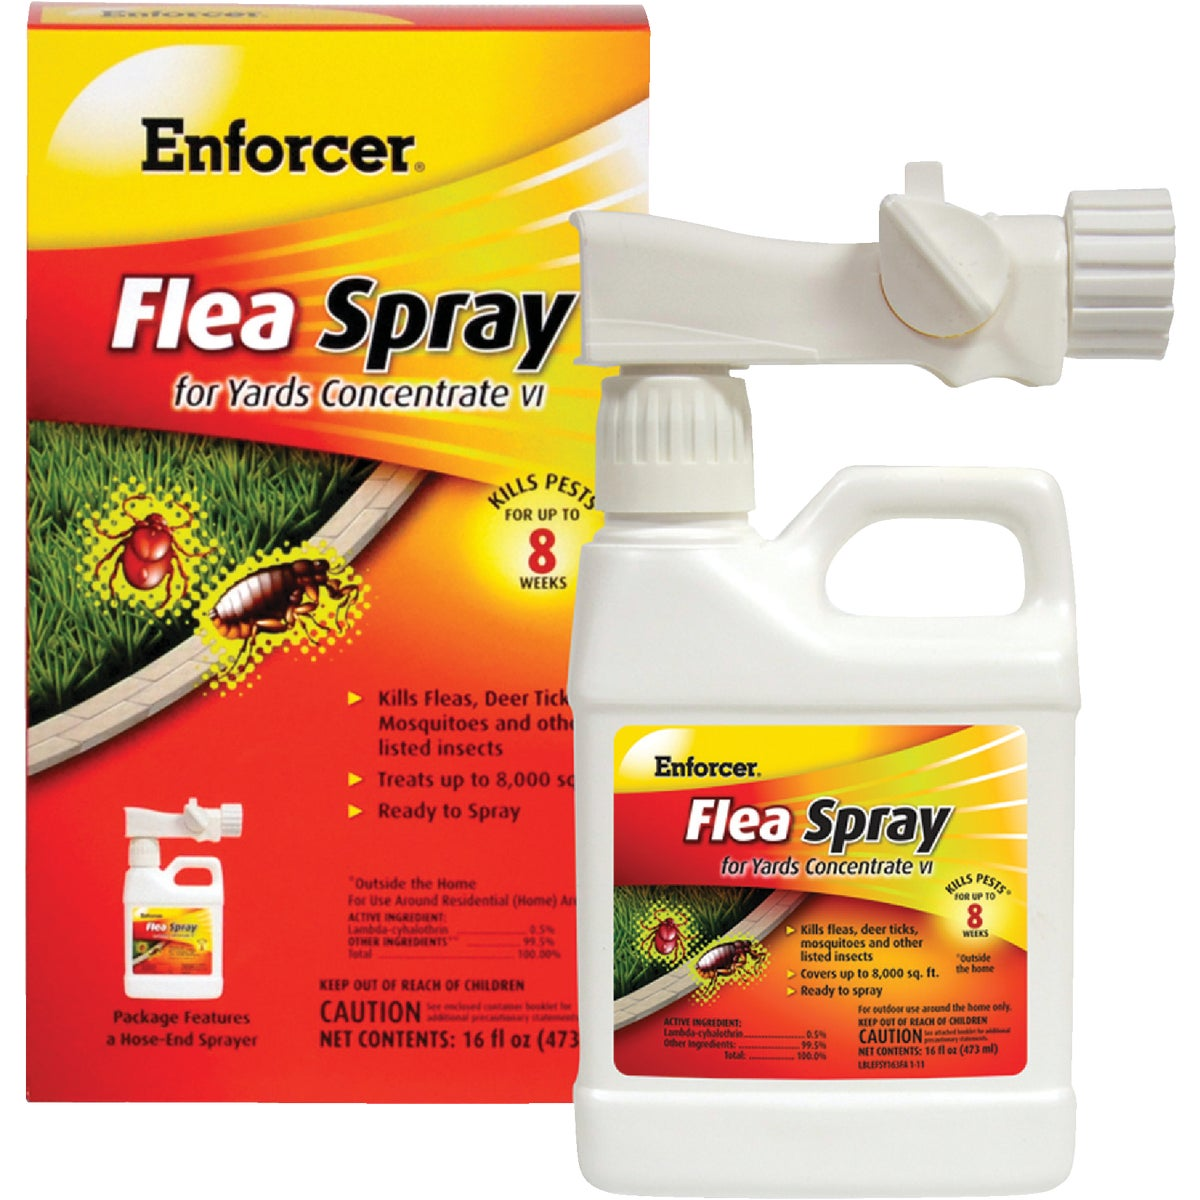 FLEA & TICK SPRY CONC - EFSY163 by Zep Enforcer Inc